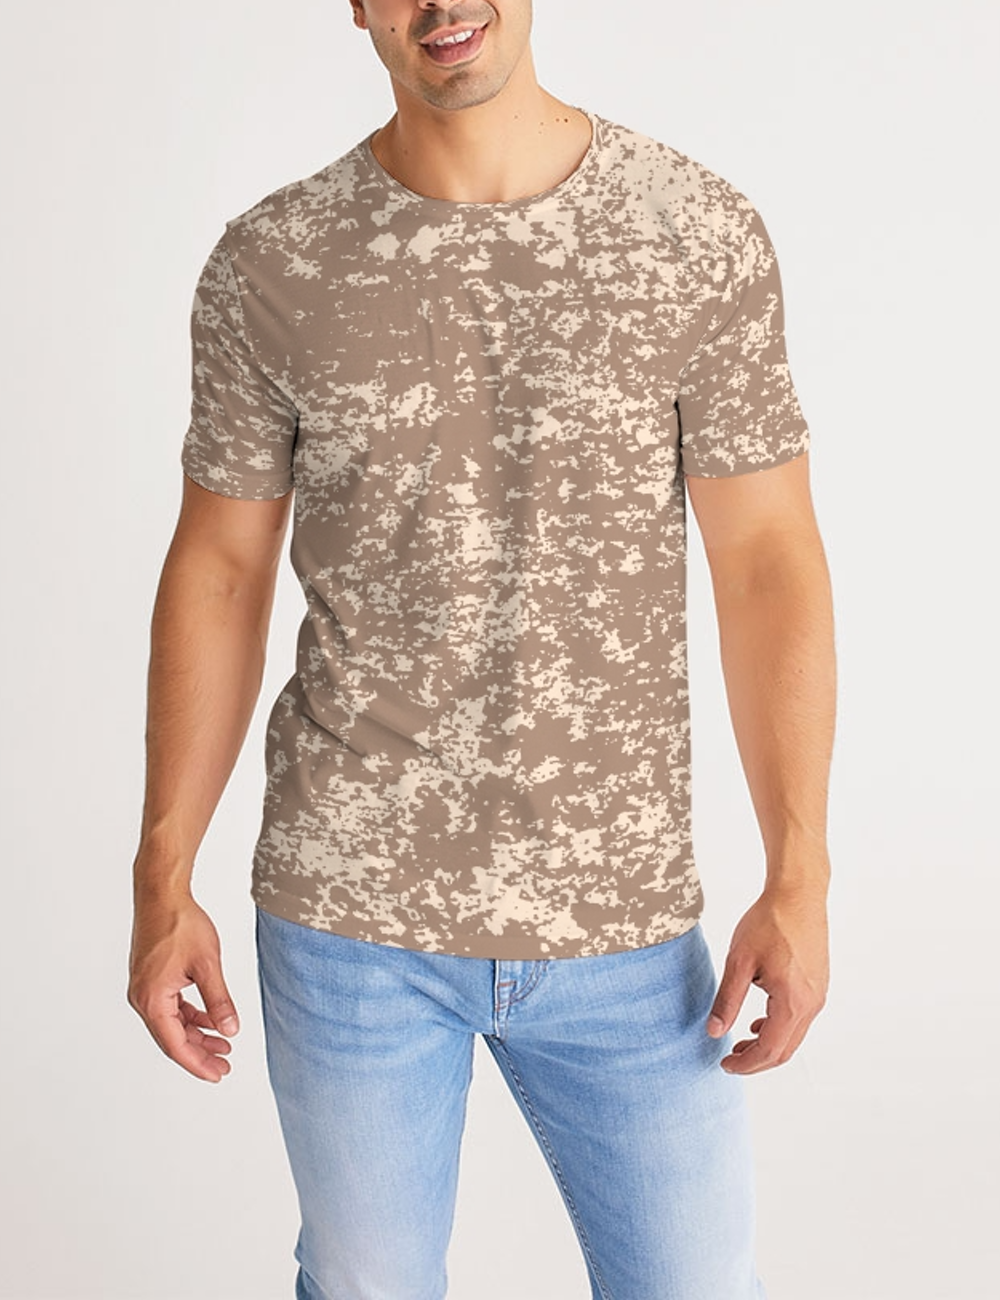 Desert Storm | Men's Sublimated T-Shirt